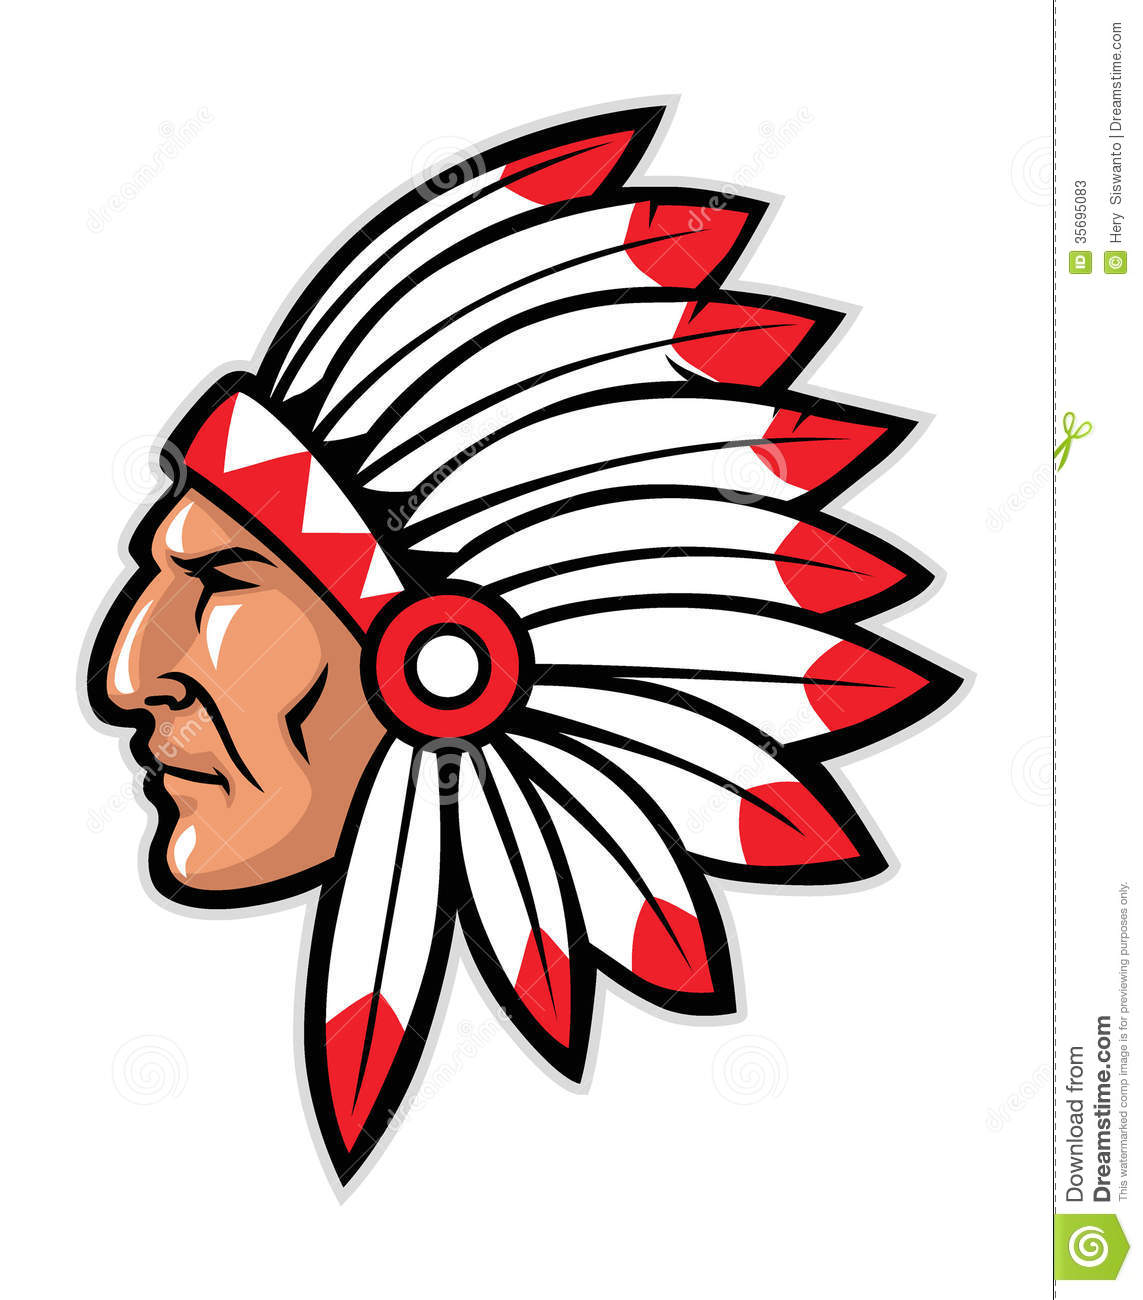 Vector of indian head mascot, suitable as a sport team or club mascot.